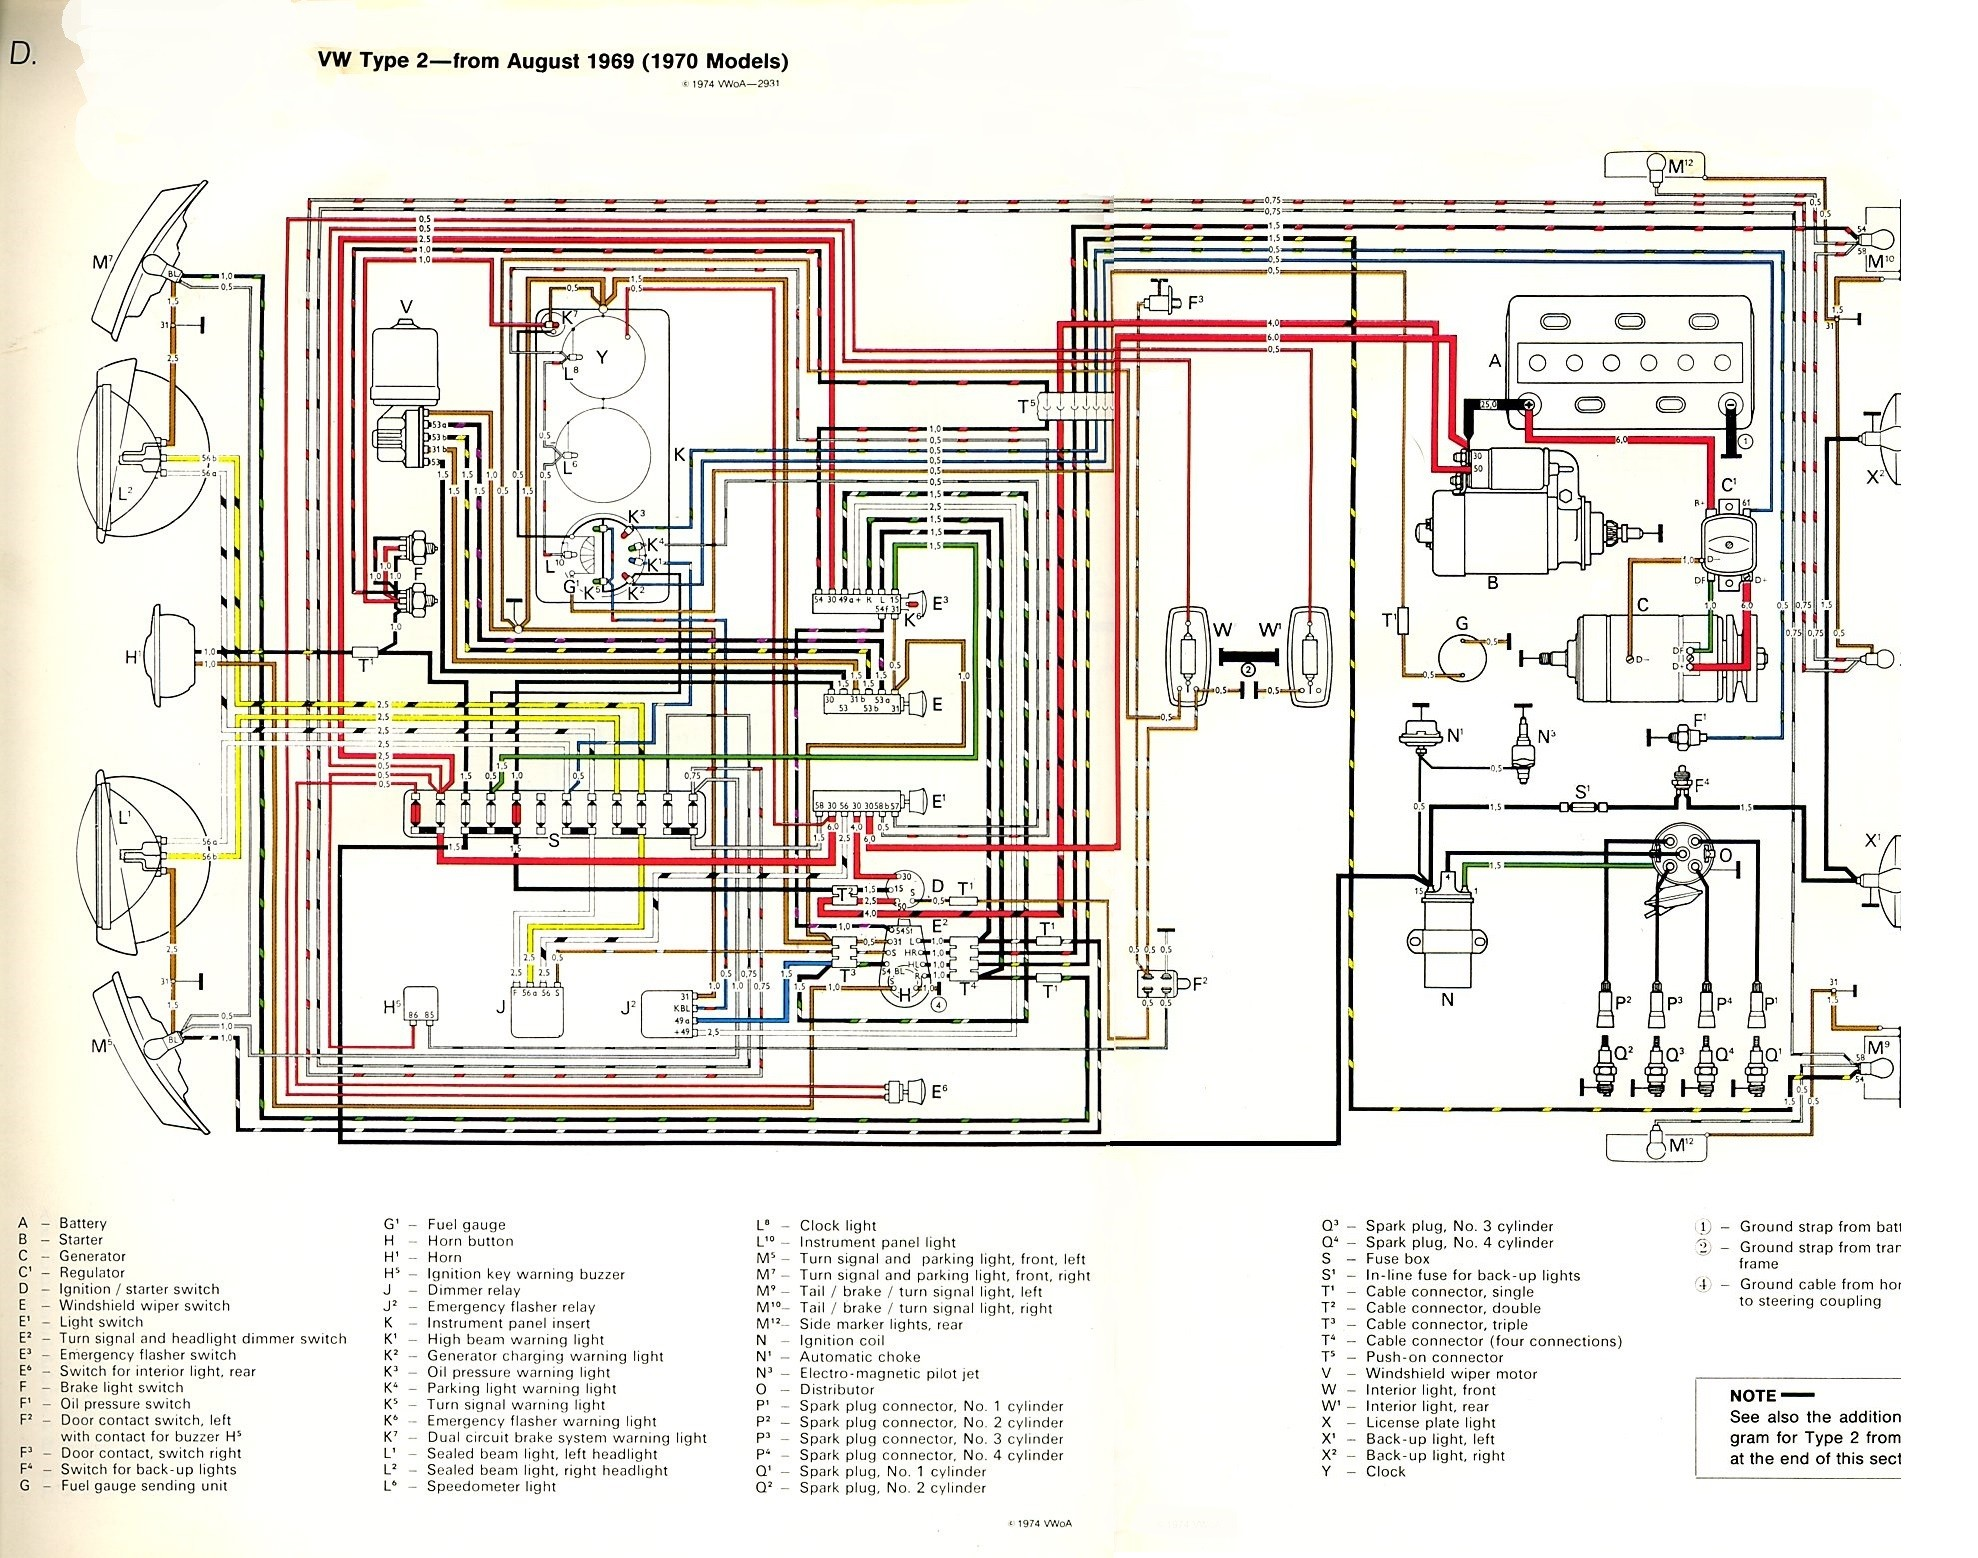 1968 Firebird Wiring Harness Diagram Opinions About 5 0 Fuel Injection My Rh Detoxicrecenze Com 1983 Pontiac 68